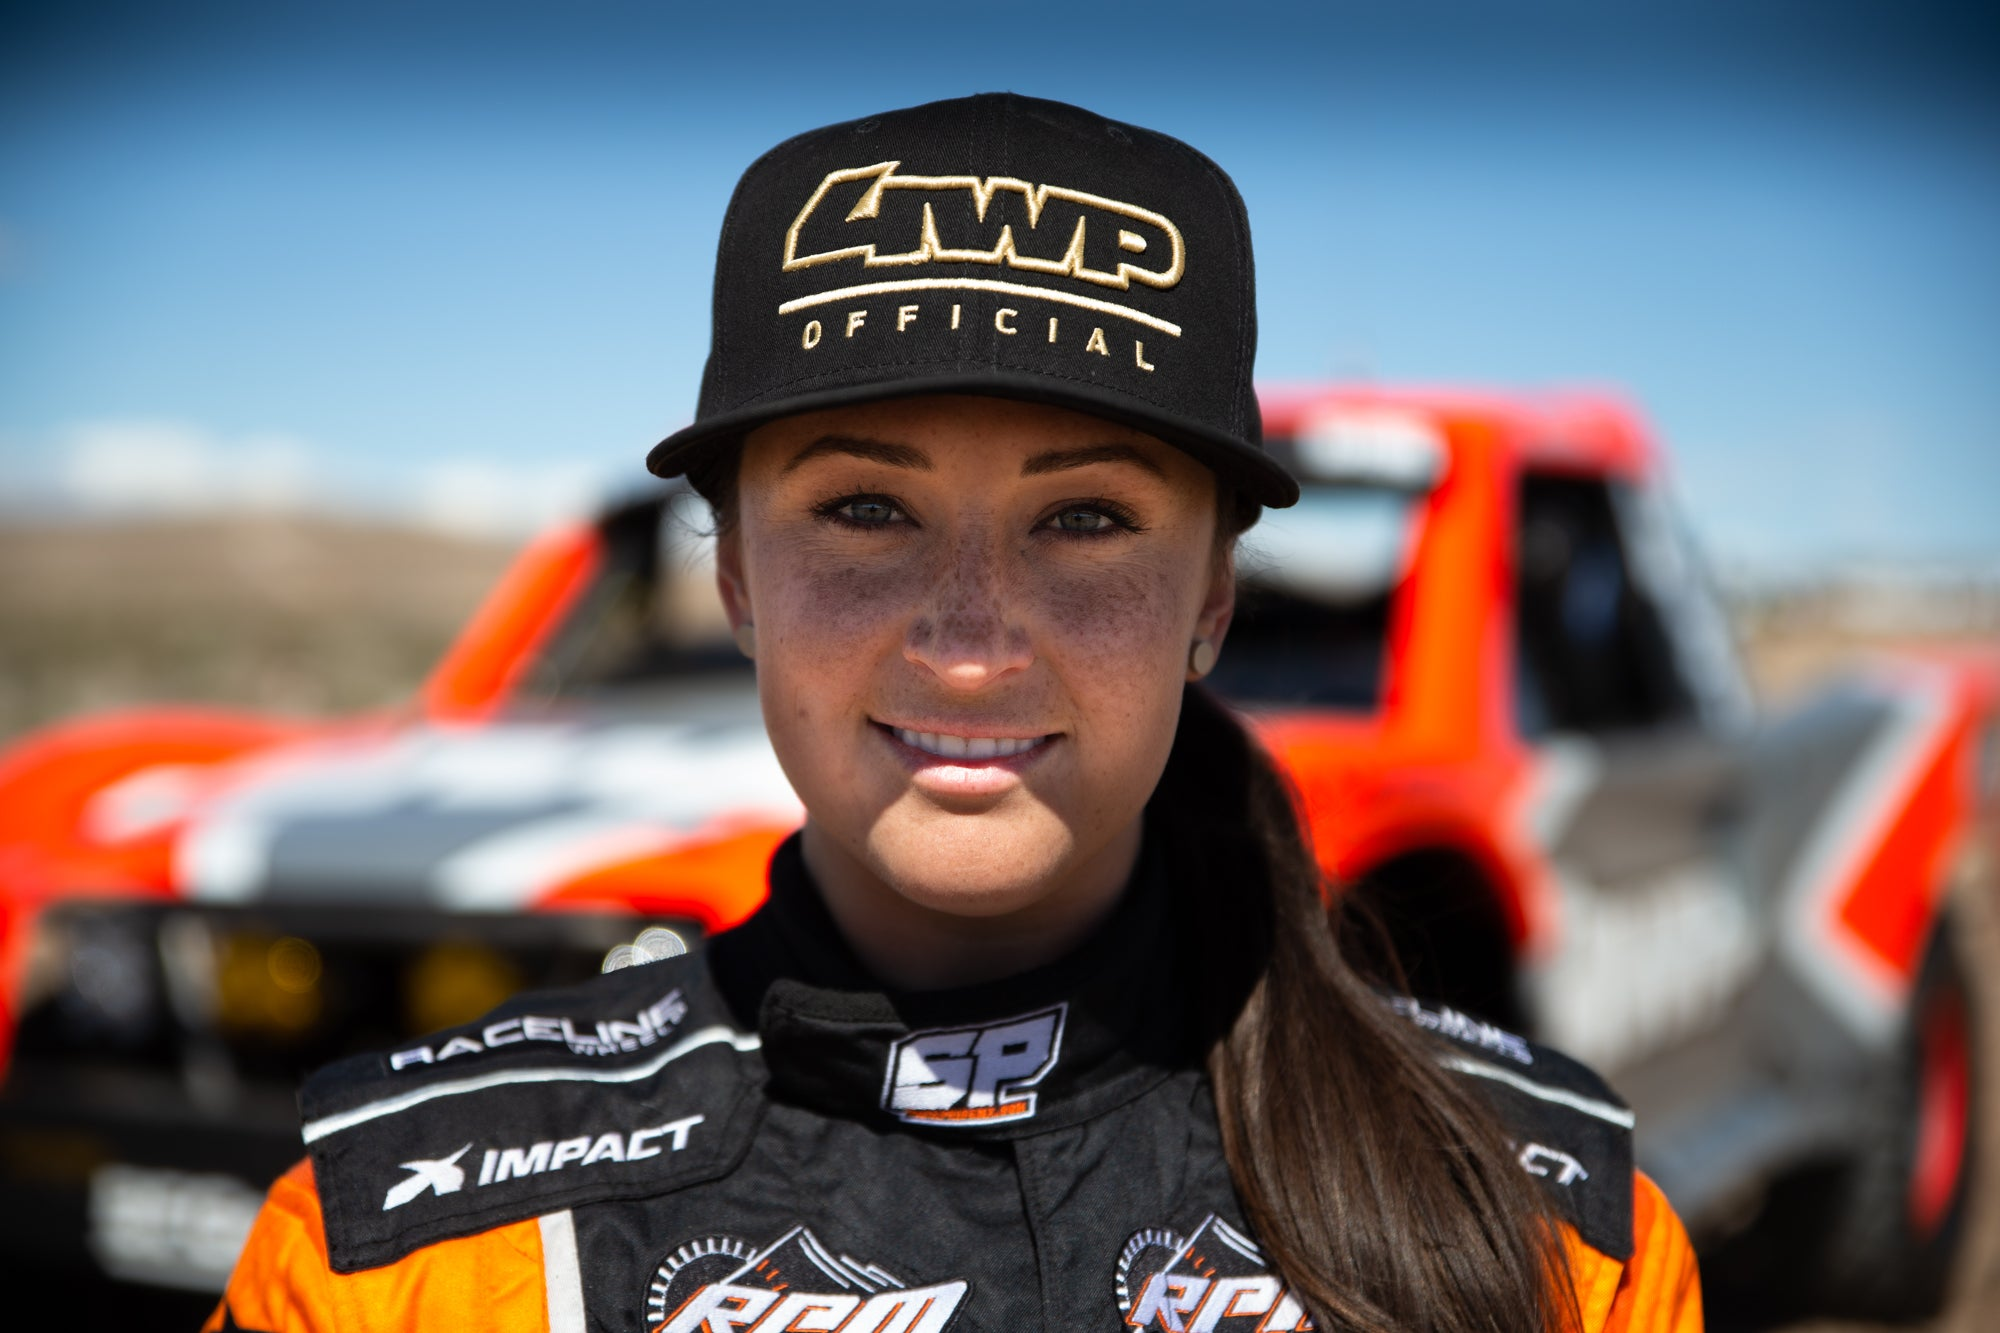 Sara Price will be competing at the world-renown SCORE World Desert Championship Baja 1000 November 19-24 as an ''IronWoman''